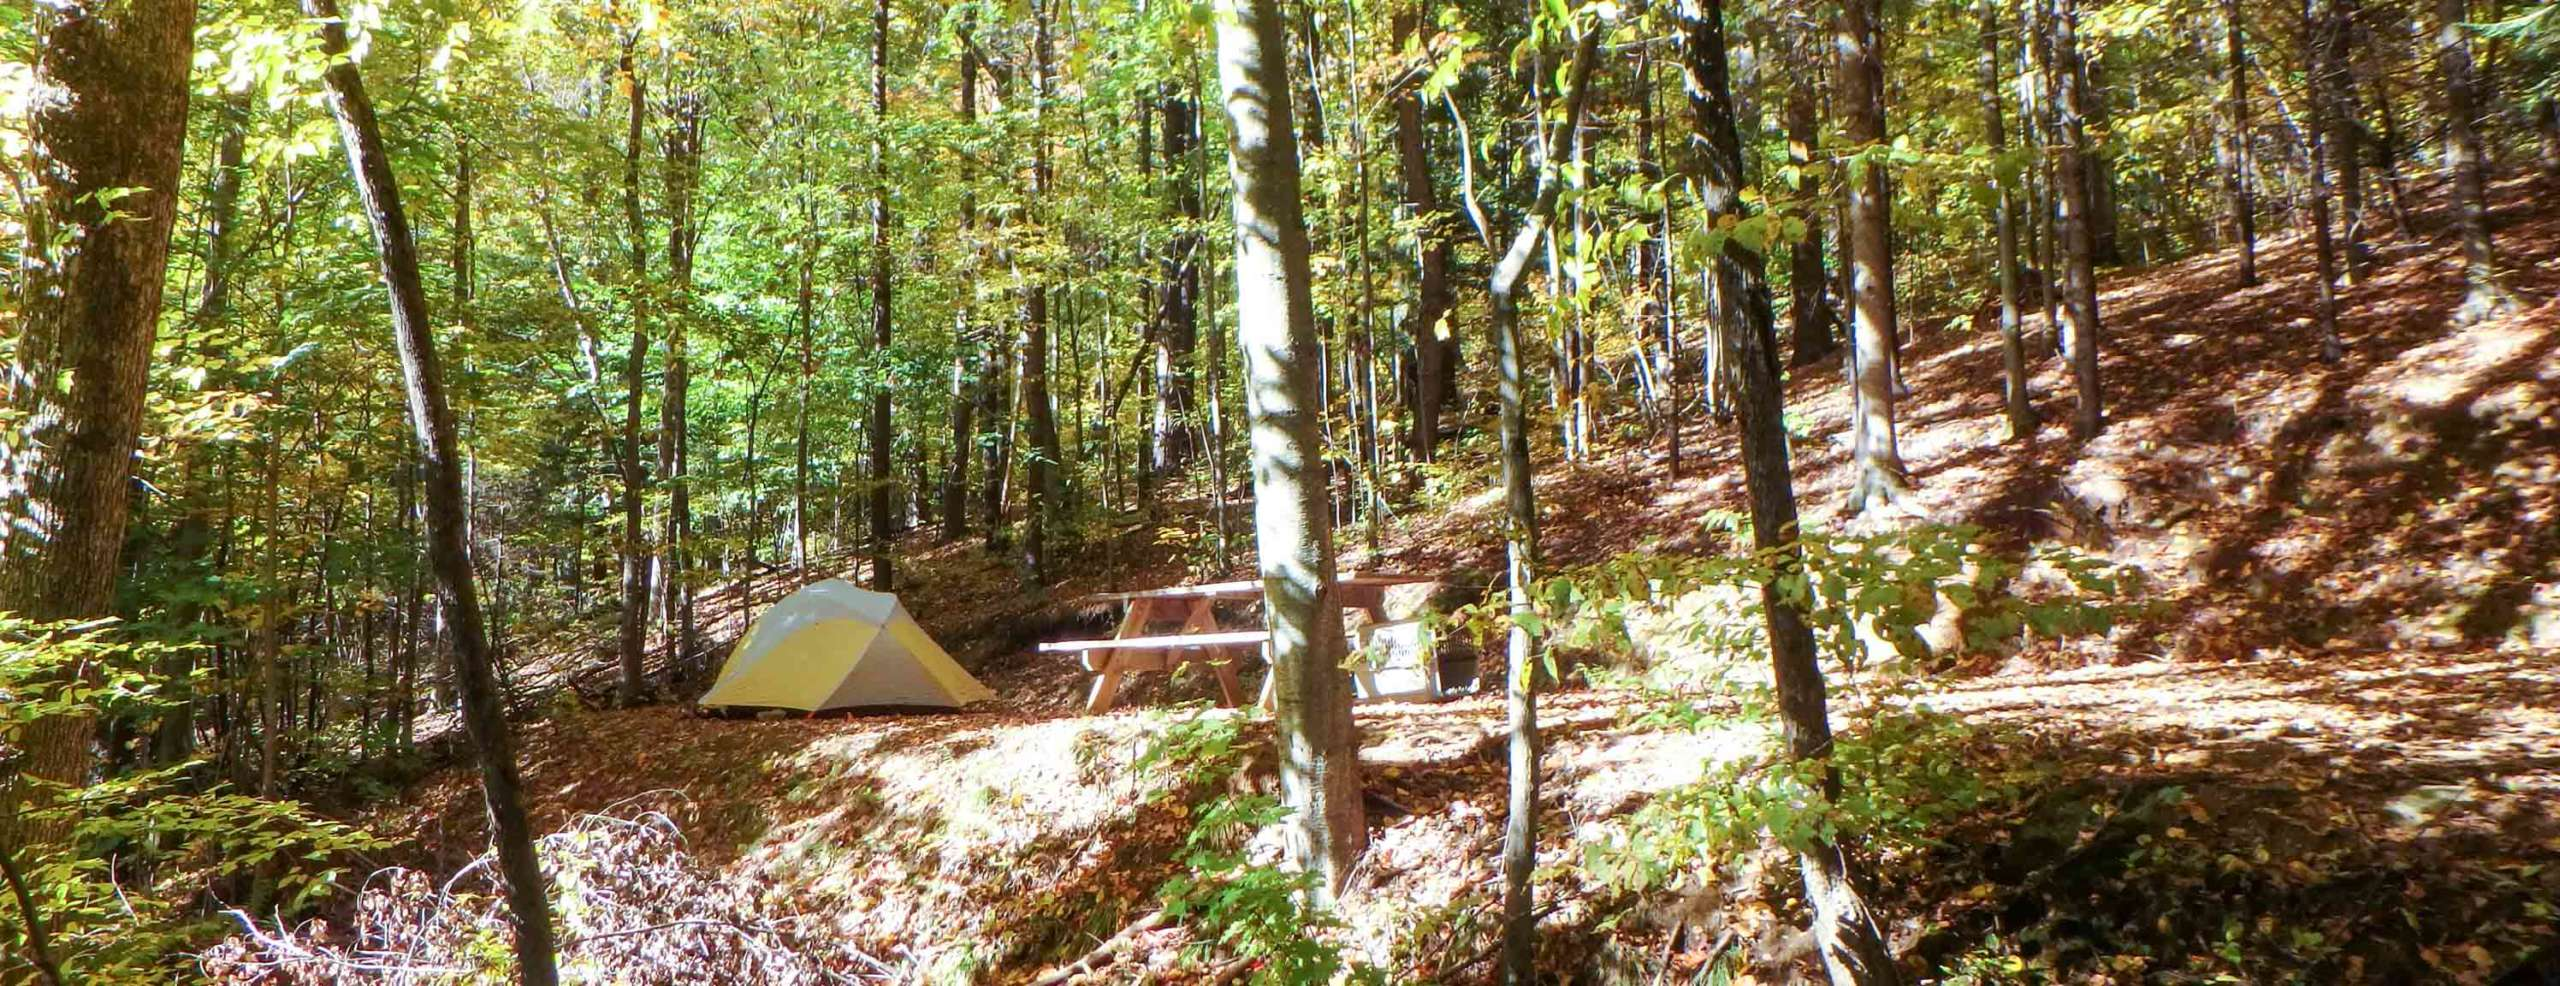 Tents set up in the woods